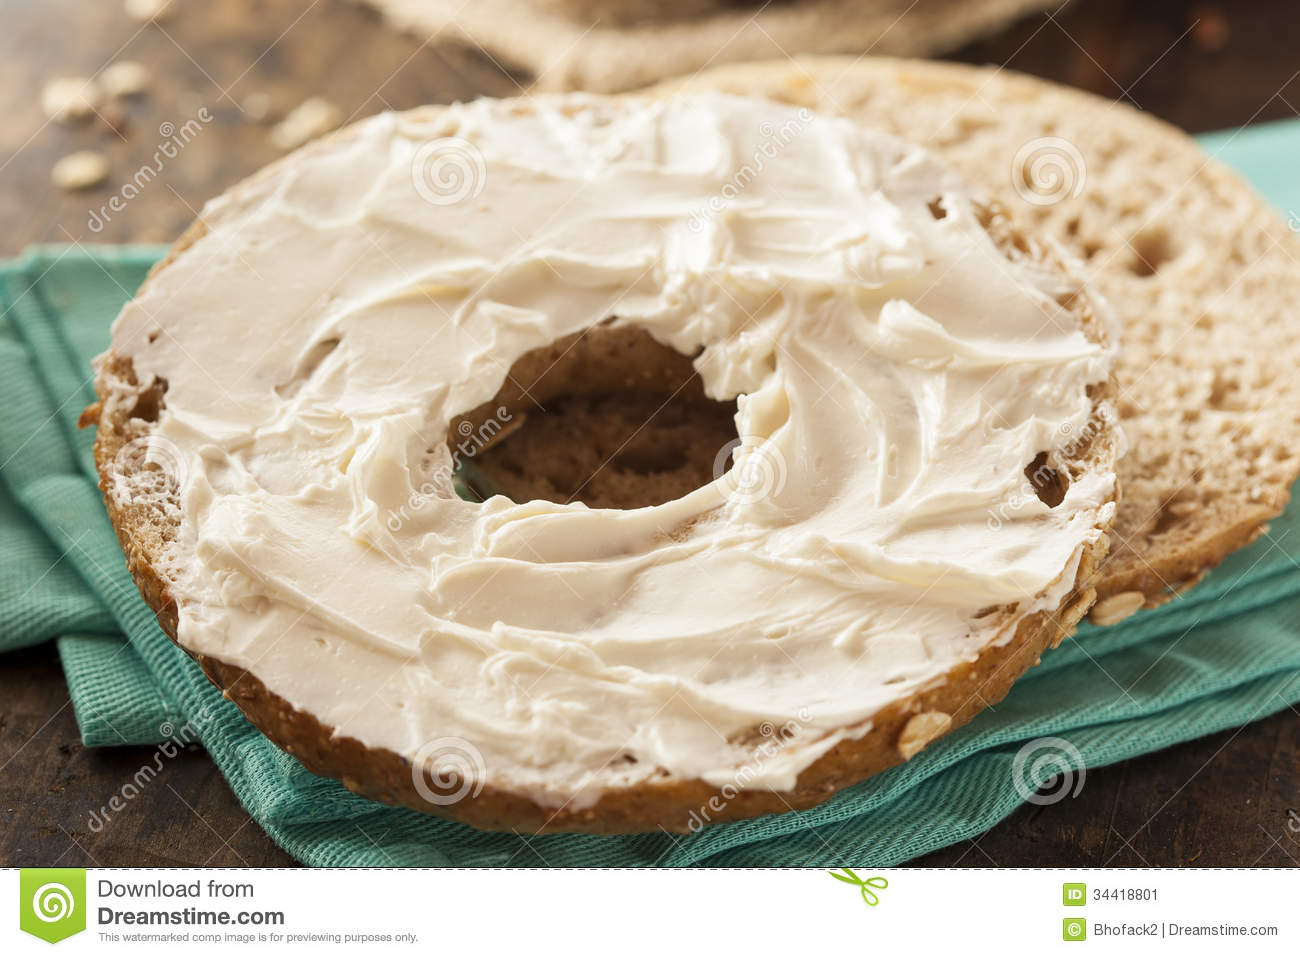 organic plain bagel with Stock Image Healthy Organic Whole Grain Bagel Cream Cheese Image34418801 on 5 Easy School Lunch Ideas besides Greek Nachos With Feta Yogurt Sauce in addition  furthermore 10 Minutes Suhoor Recipes also Daves Killer Bread forges into.